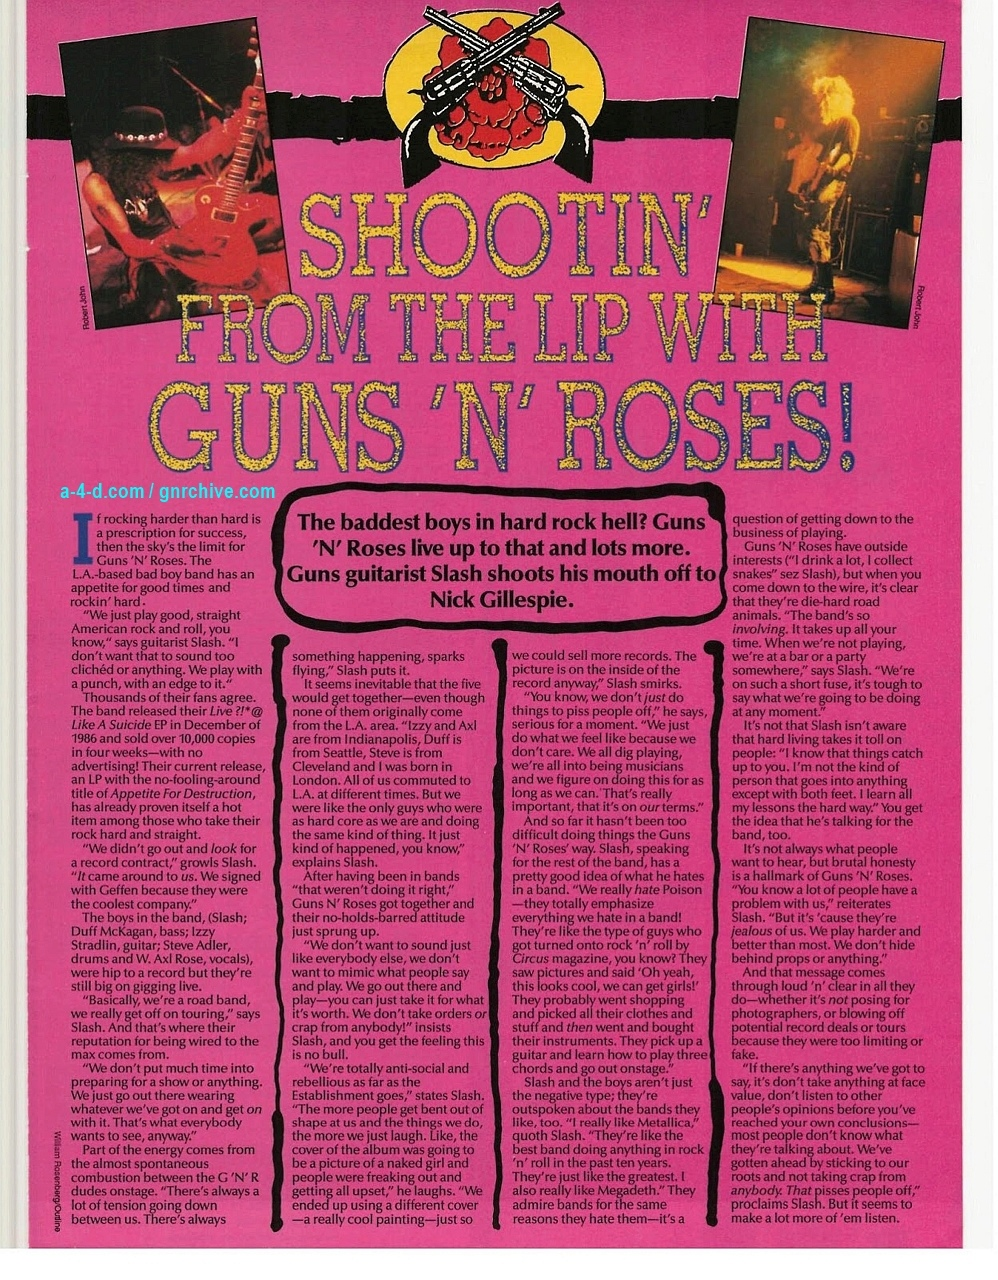 1988.11.DD - Smash Hits - Shooting From The Lip With Guns N' Roses! (Slash) 1988-112